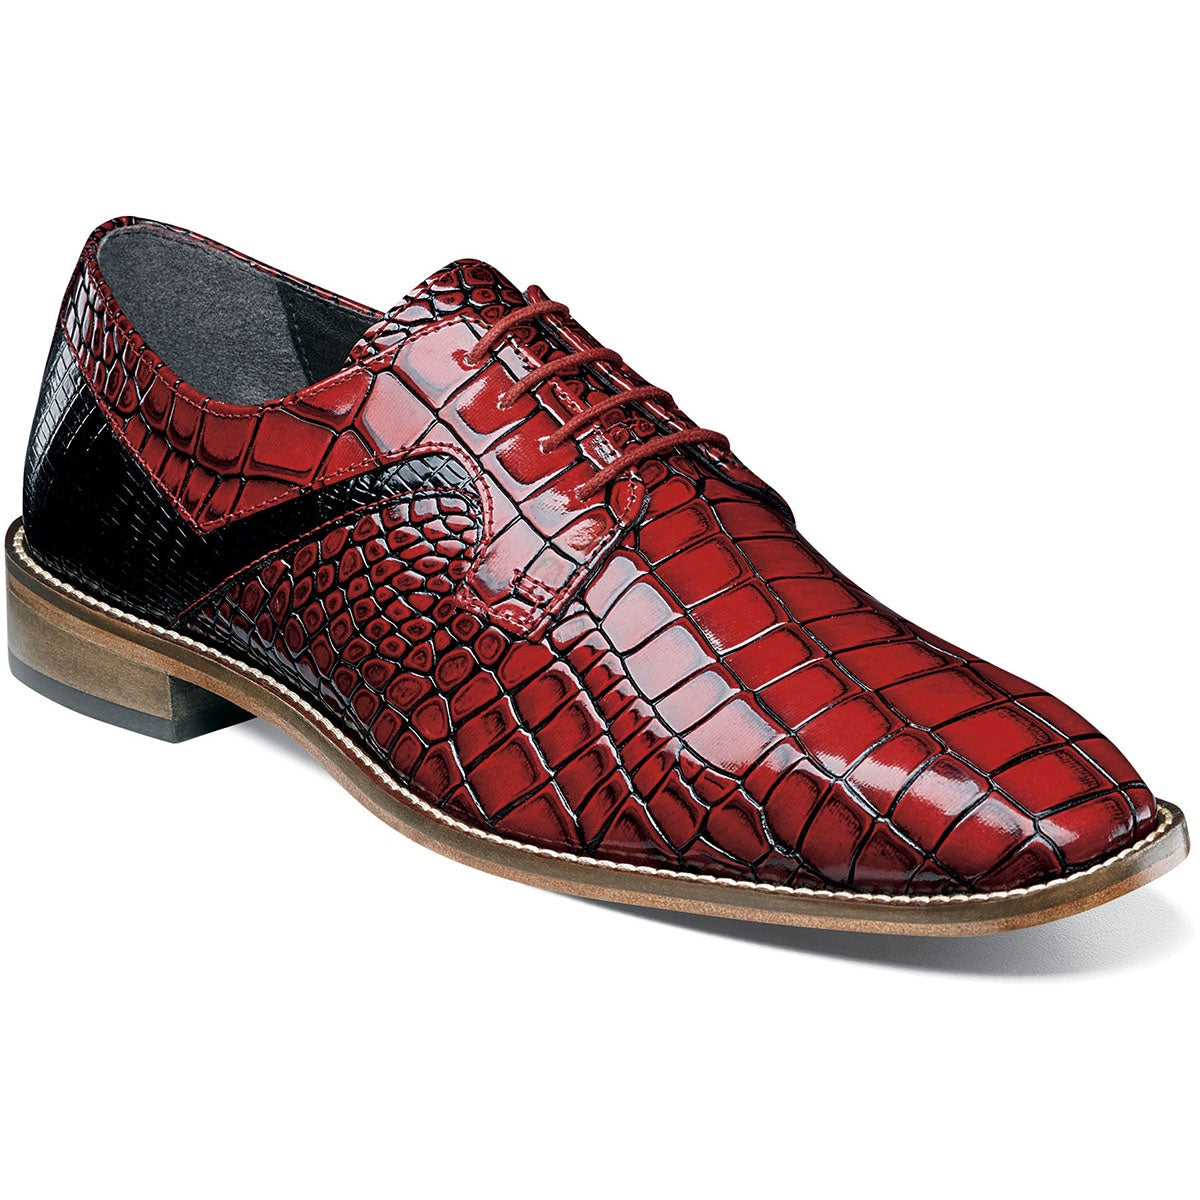 Stacy Adams Triolo Plain Toe Oxford - Black / Red Shoes - Dapperfam.com